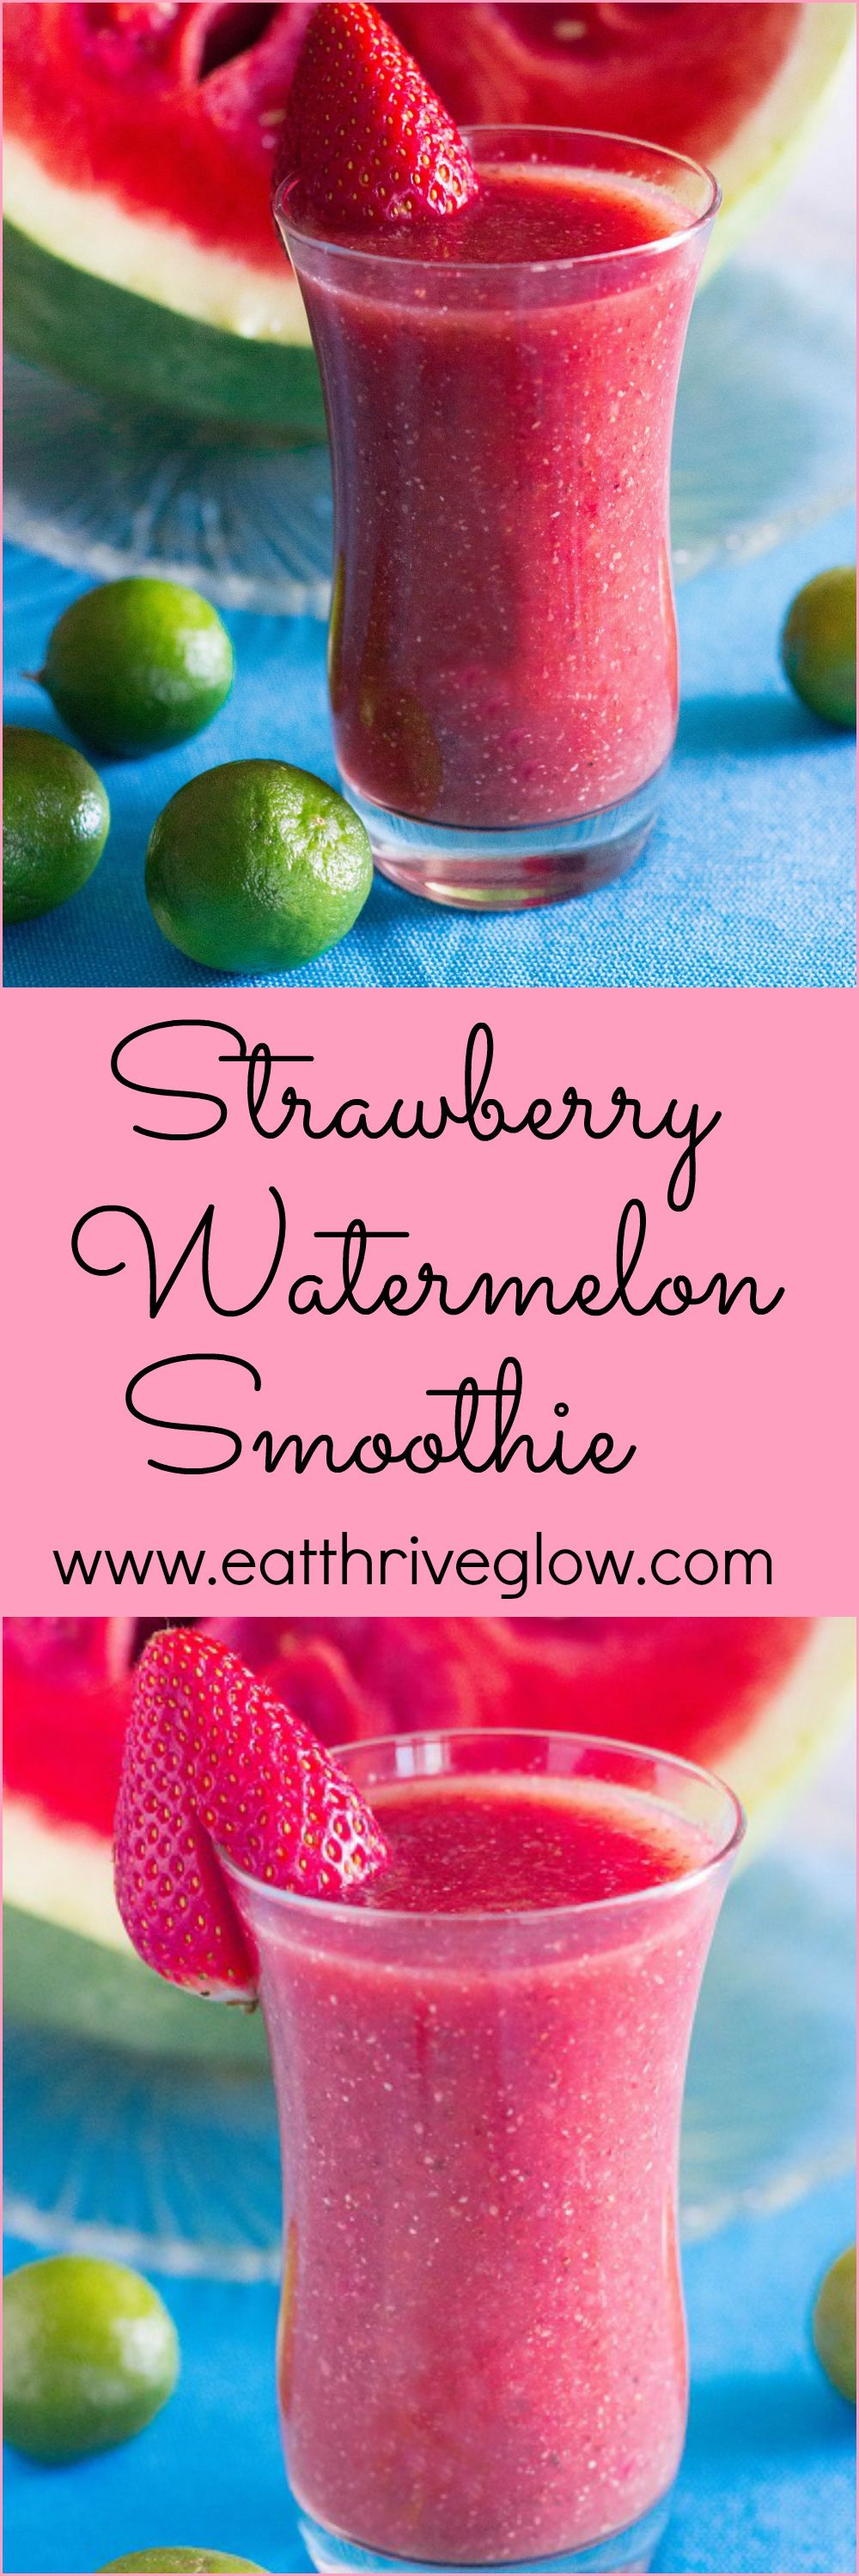 Watermelon smoothie: cooking recipe, benefits 46